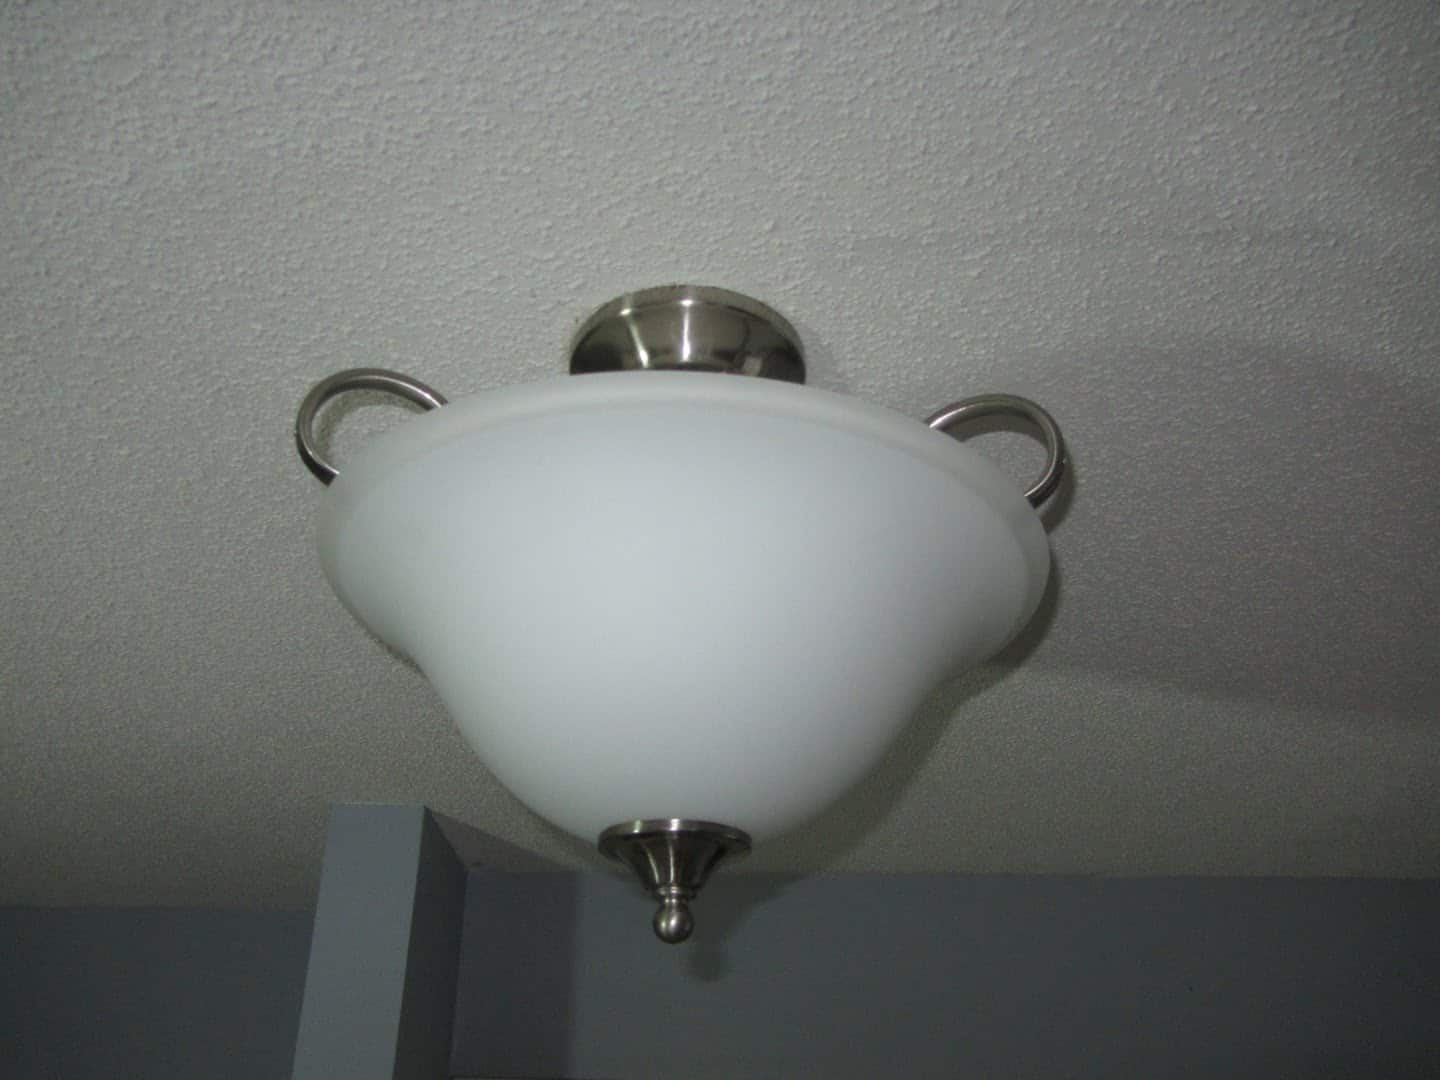 Installing light fixture how to replace it diy home improvement installing light fixture how to replace it arubaitofo Choice Image